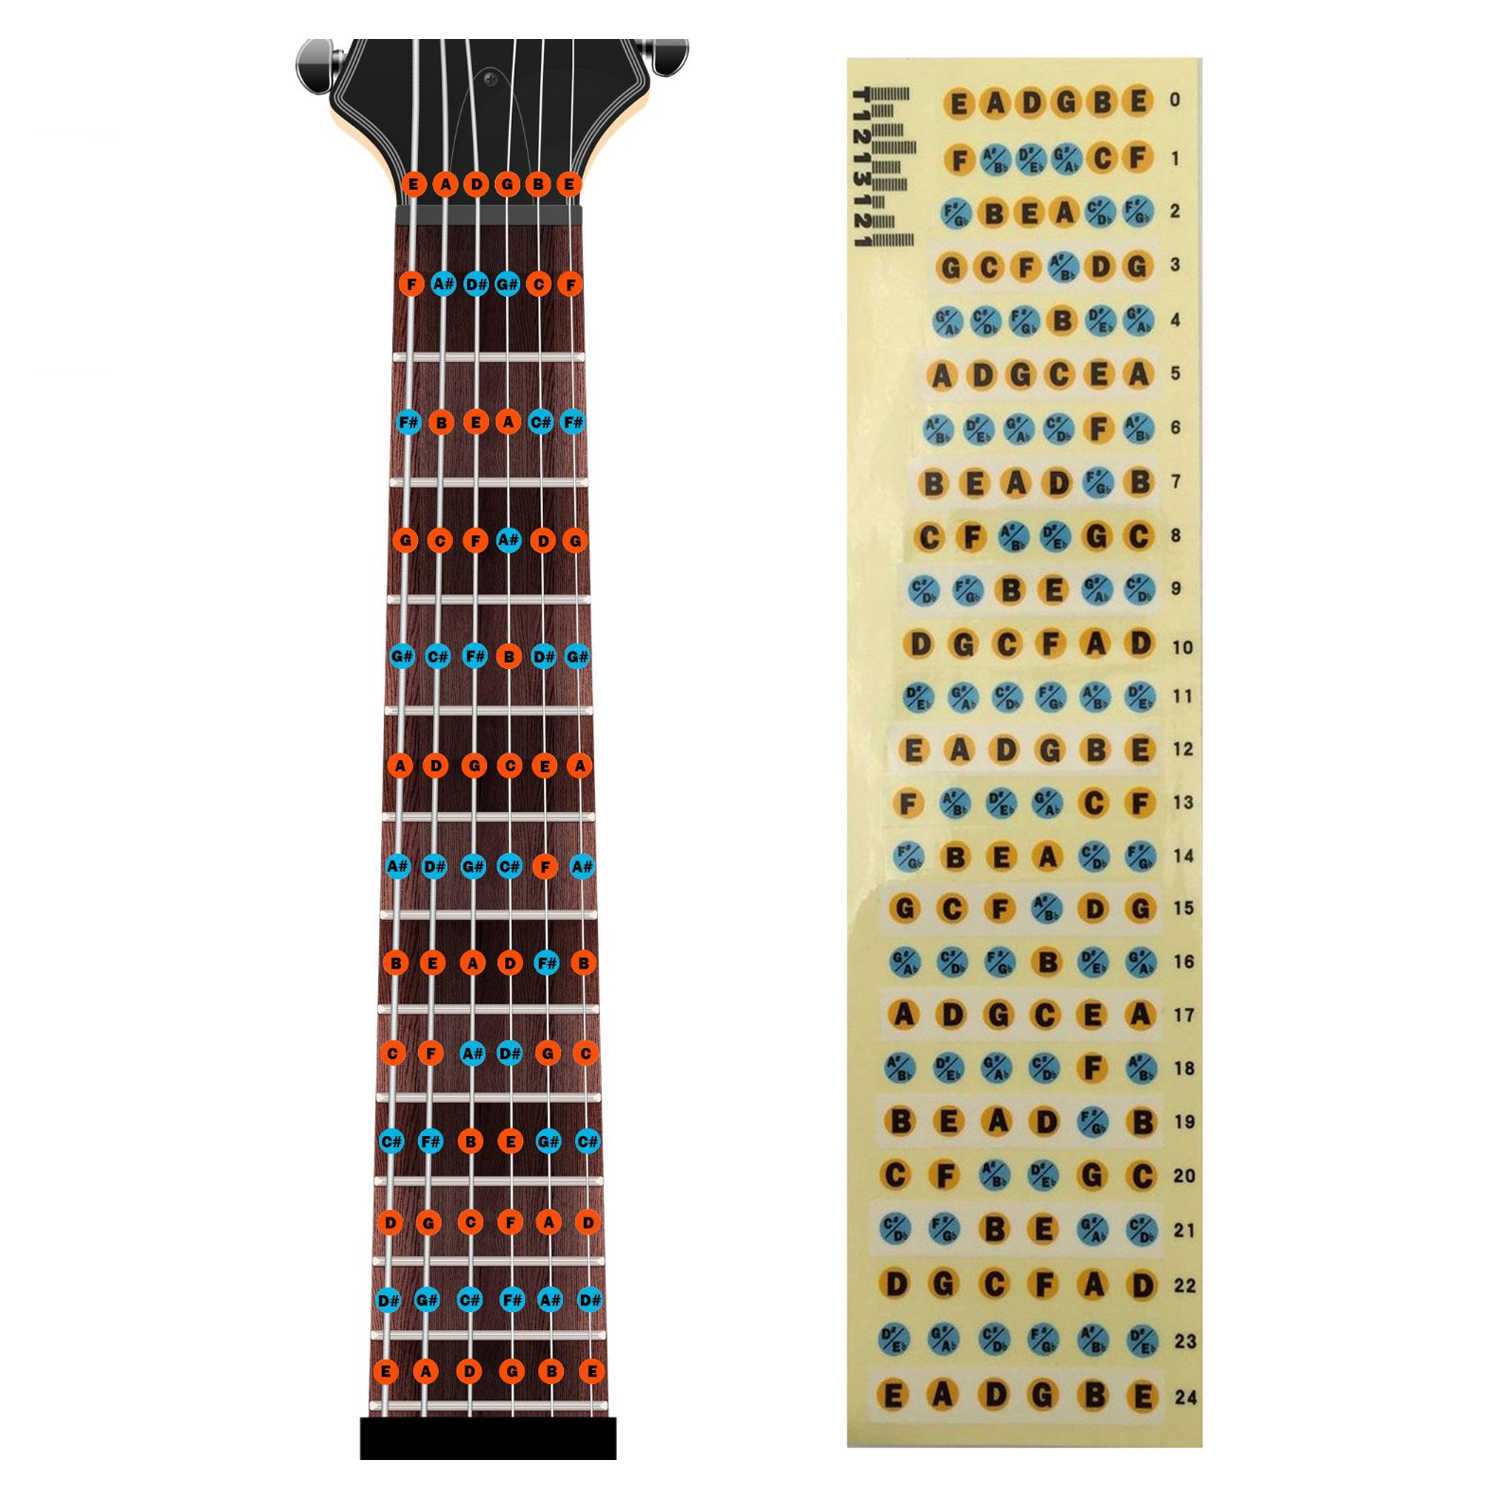 BMDT-Guitar Fretboard Note Decals Fingerboard Frets Map Sticker for Beginner Learner Practice Fit 6 Strings Acoustic Guitar